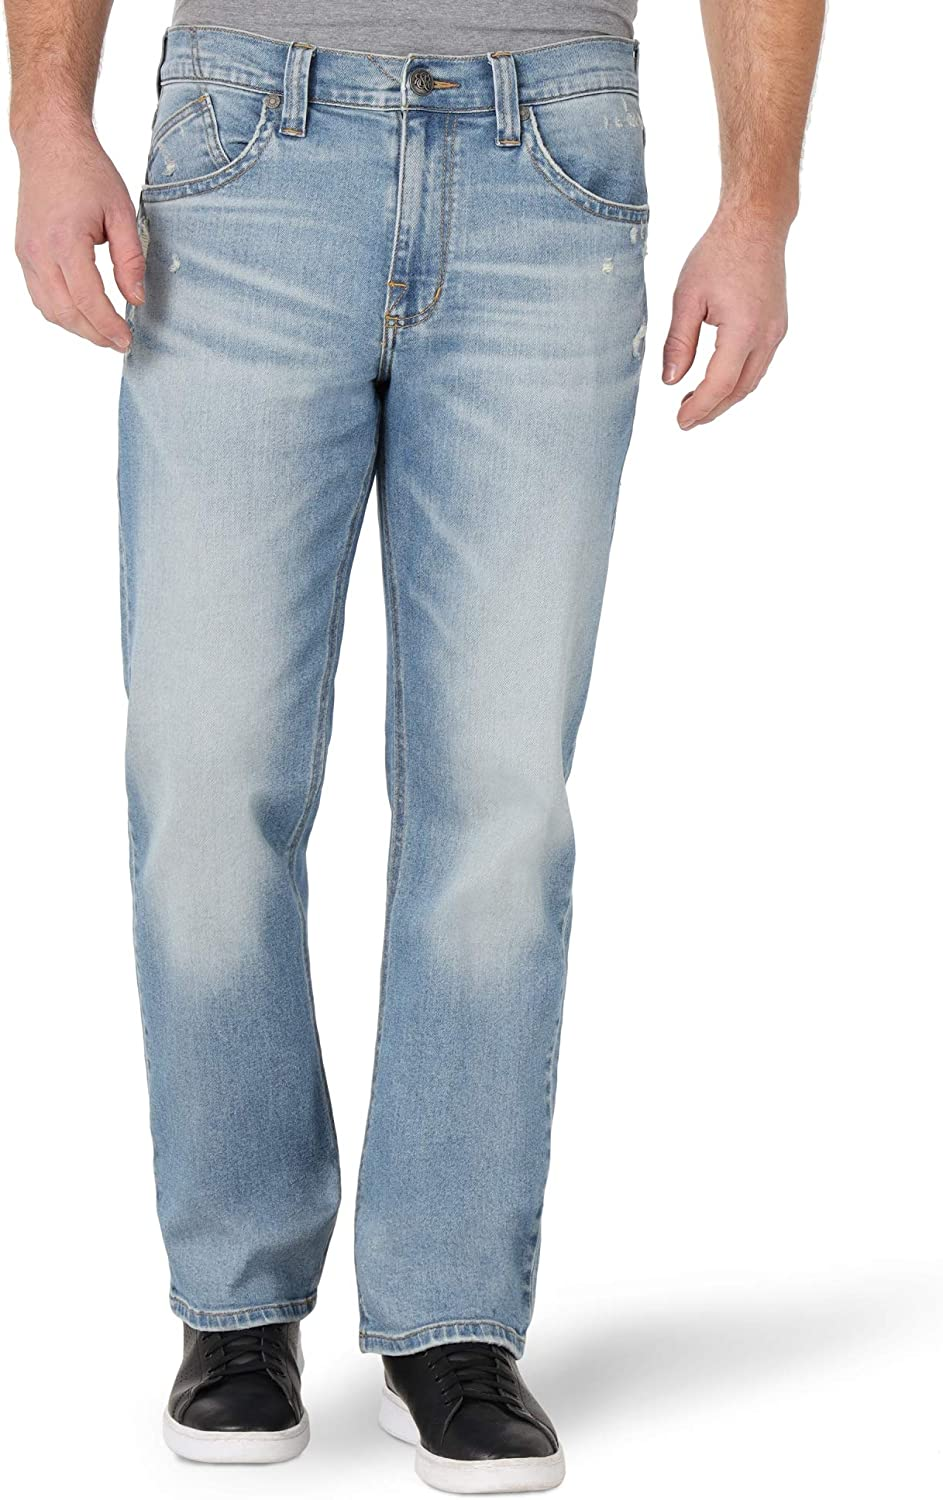 Max 57% OFF Rock Republic Men's Straight NEW before selling ☆ Jean Relaxed